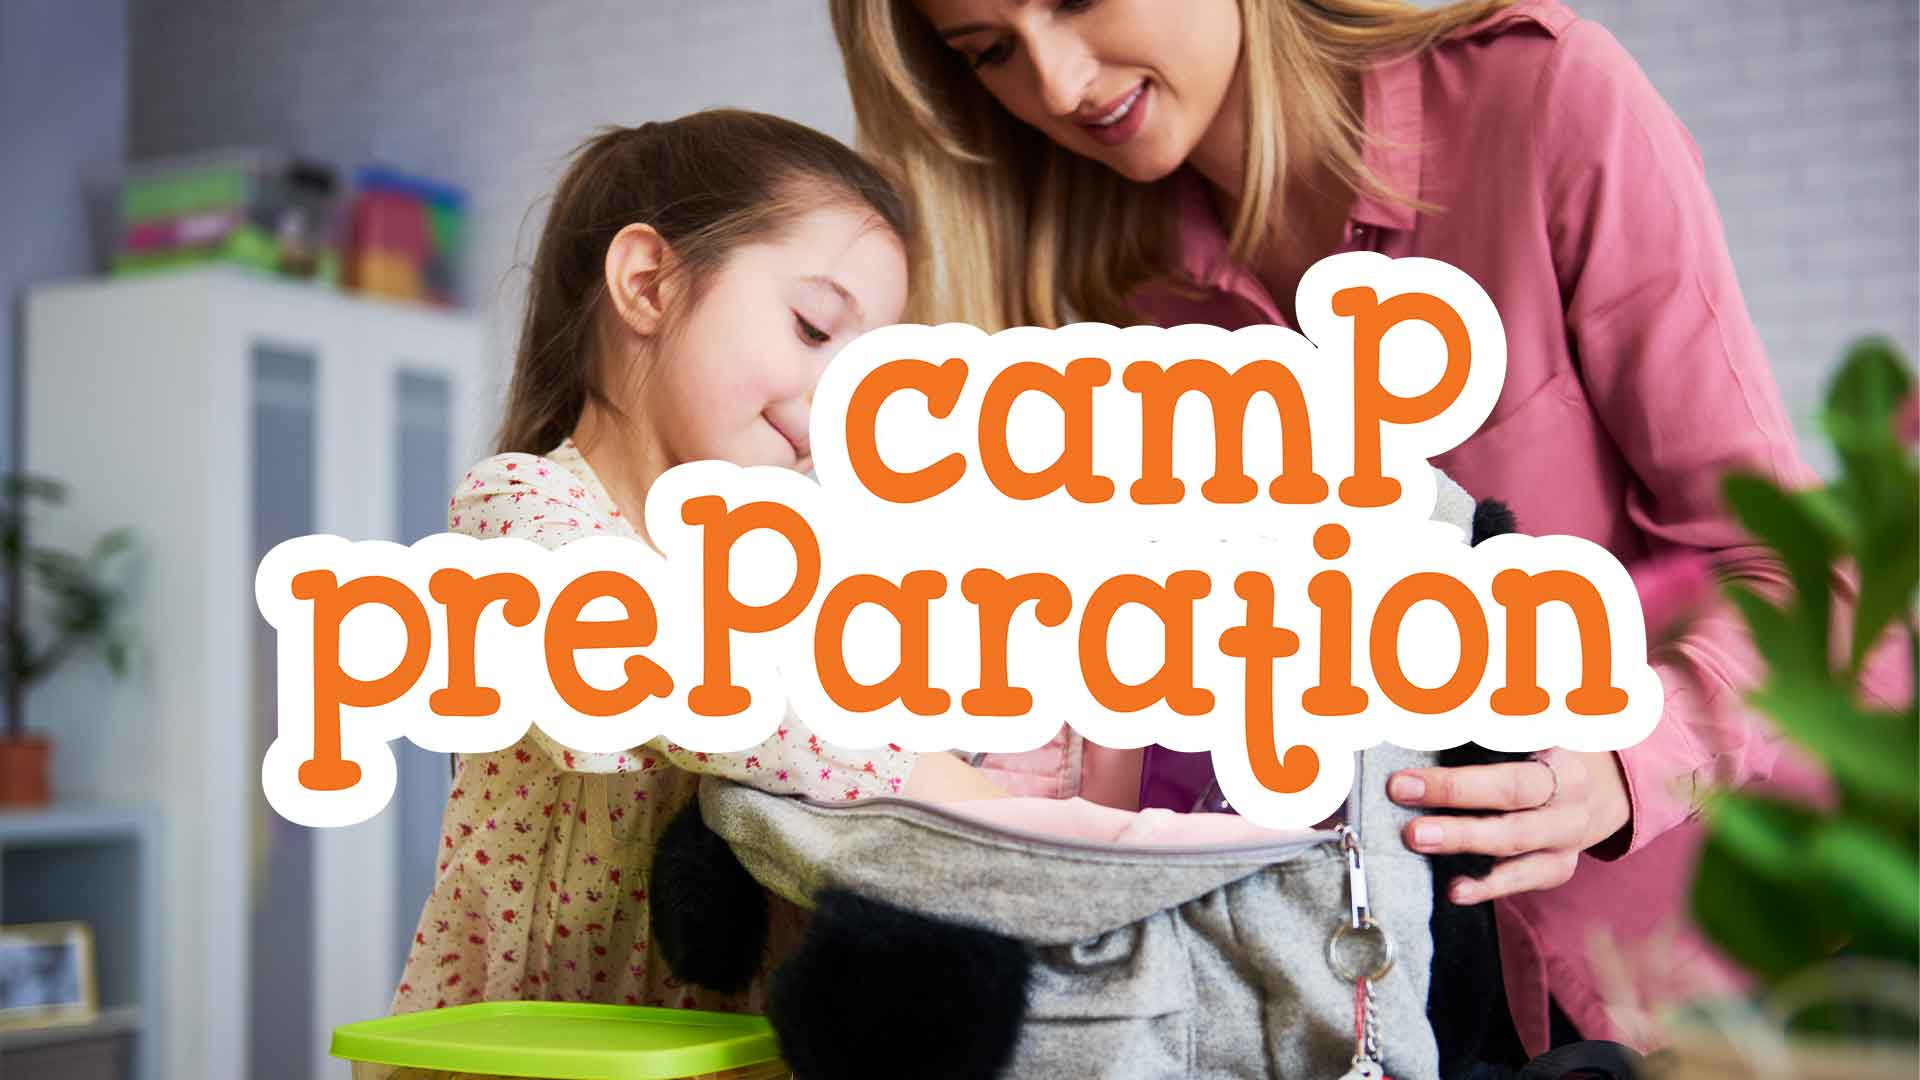 Camp Preparation - advice for parents about Camp 4 Champs